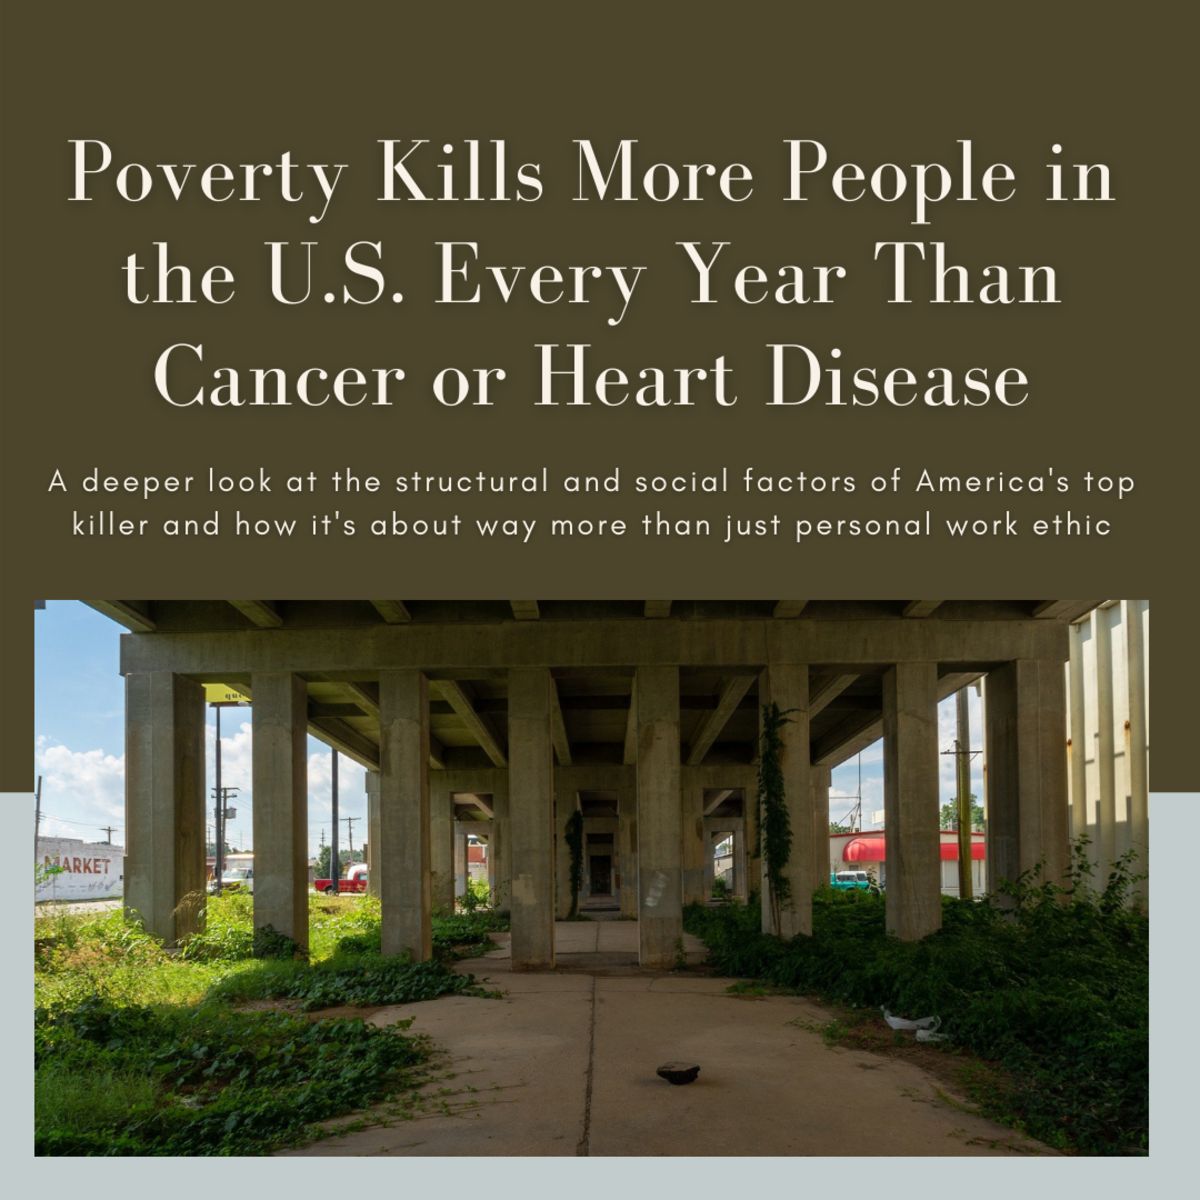 Poverty Kills More People Every Year in the U.S. Than Heart Disease or Cancer